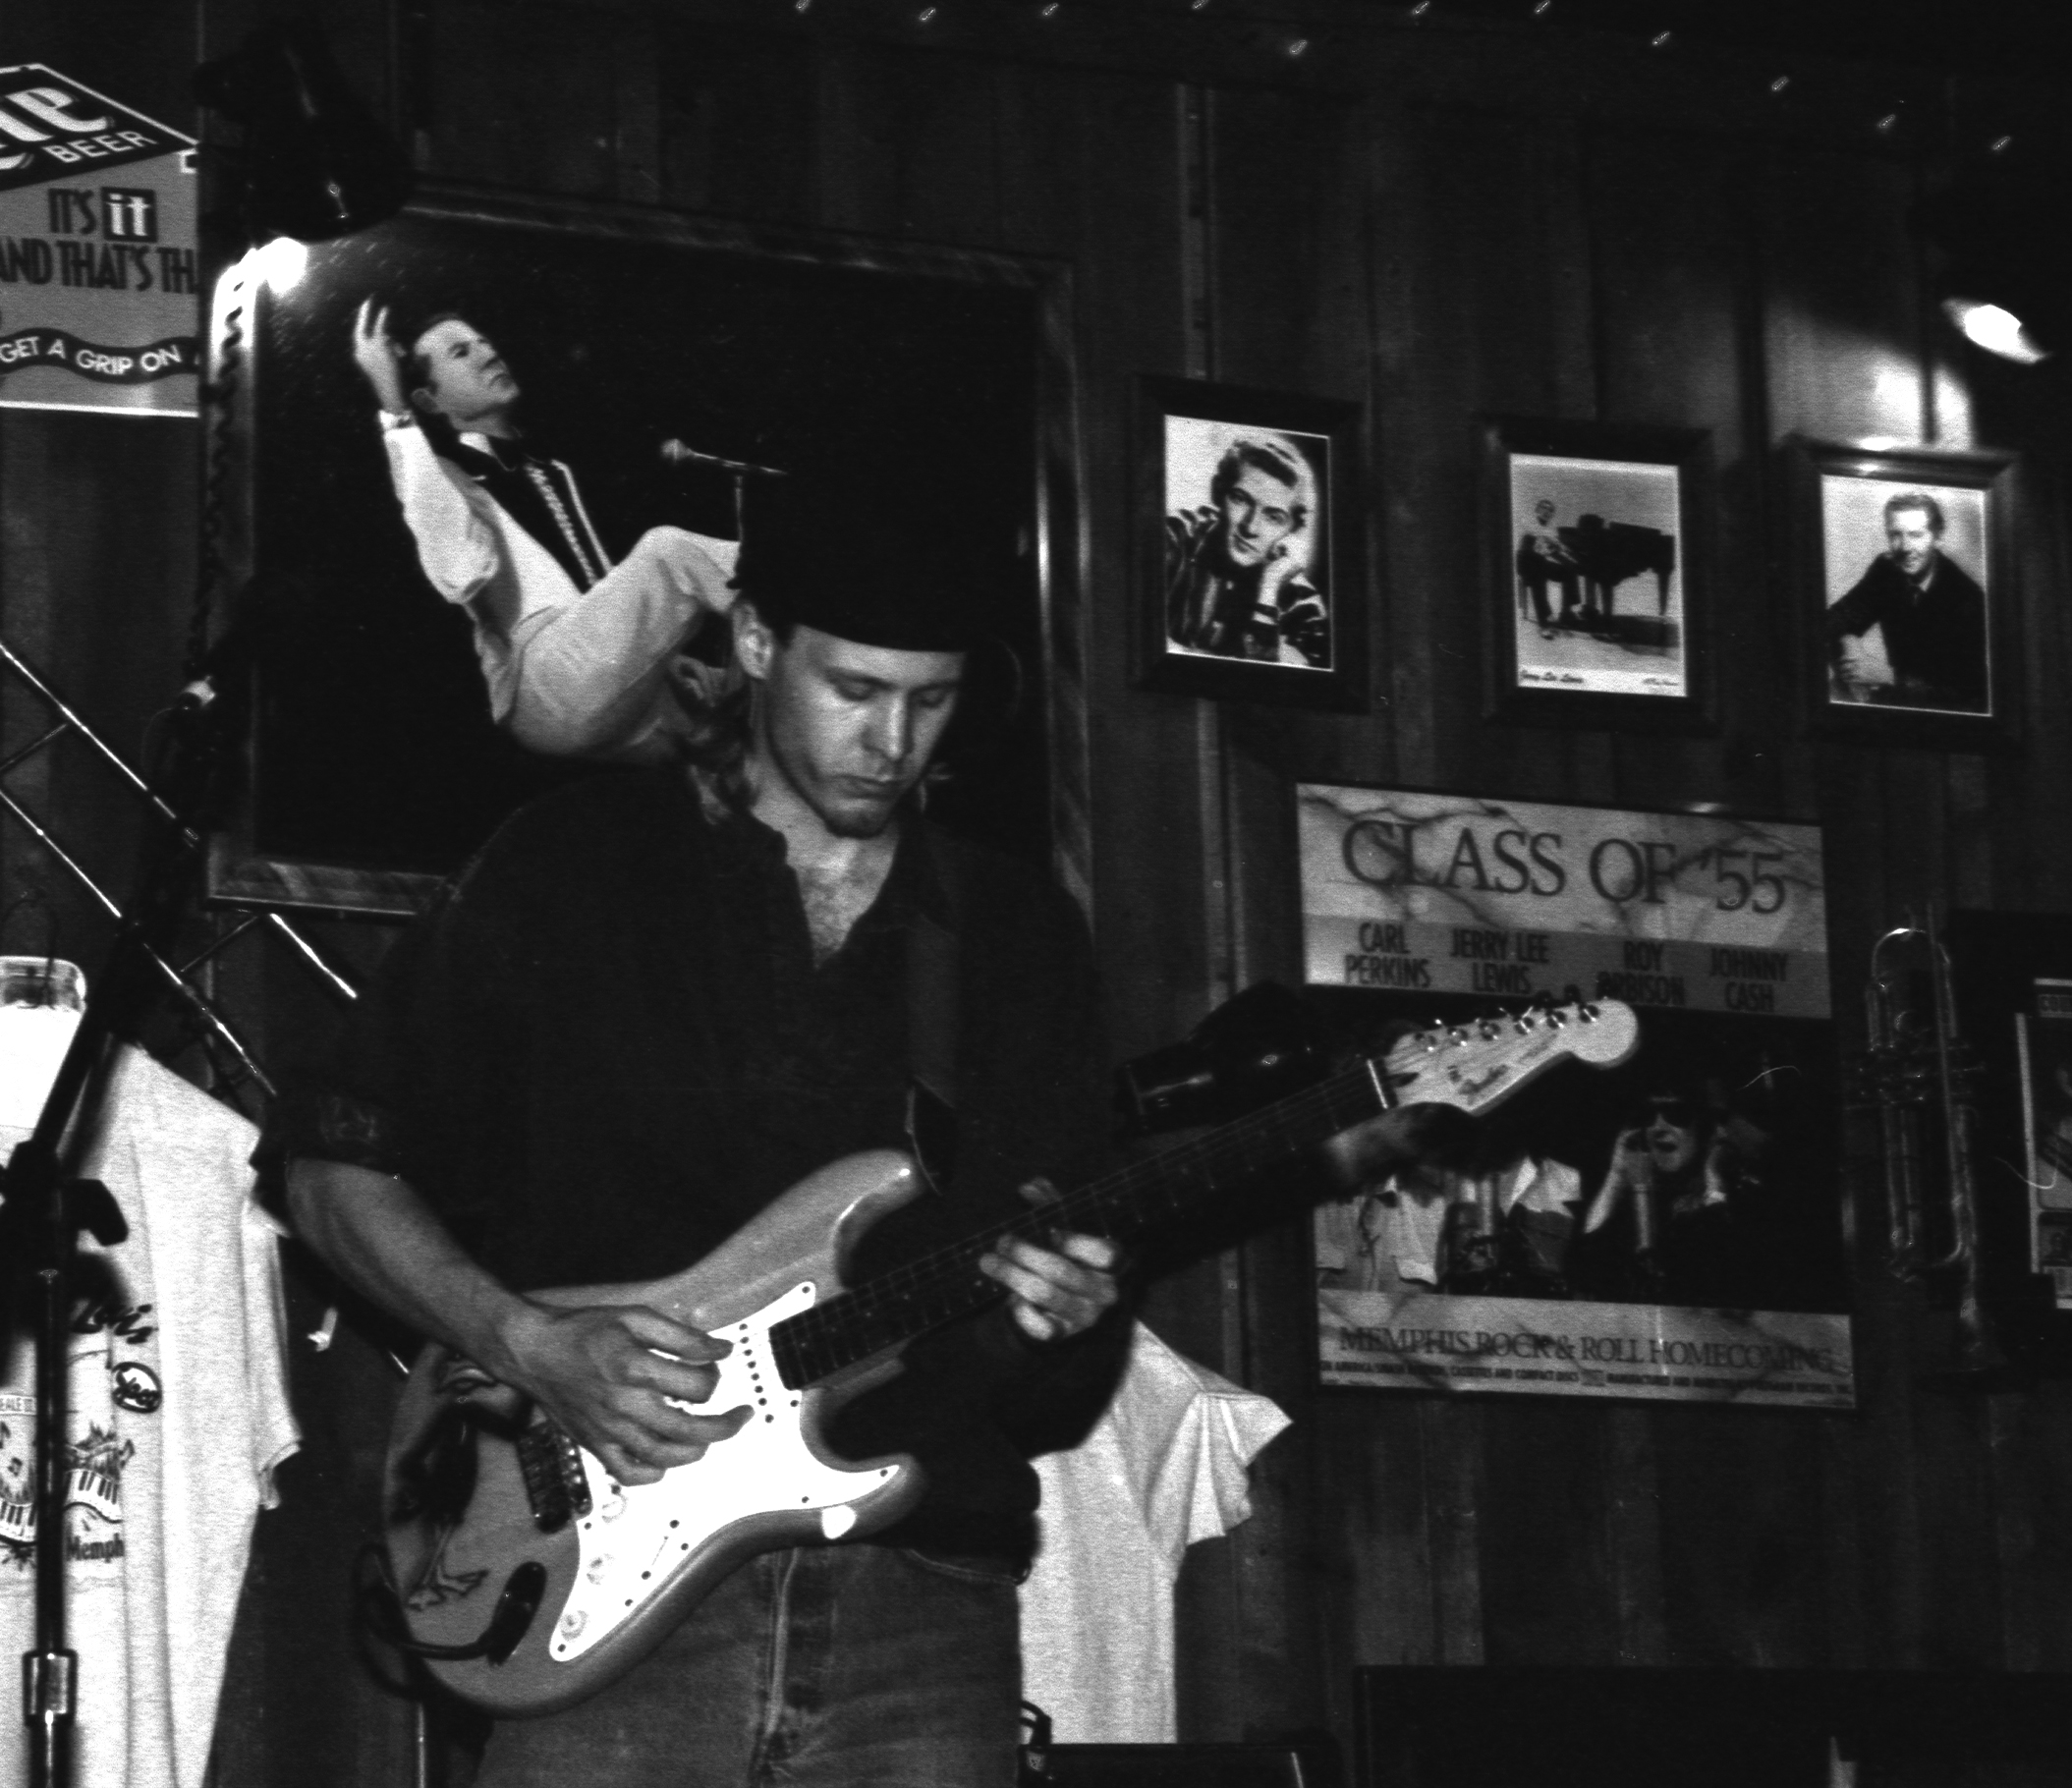 Live at Jerry Lee Lewis's club on Beale Street in Memphis circa 1995 or so.